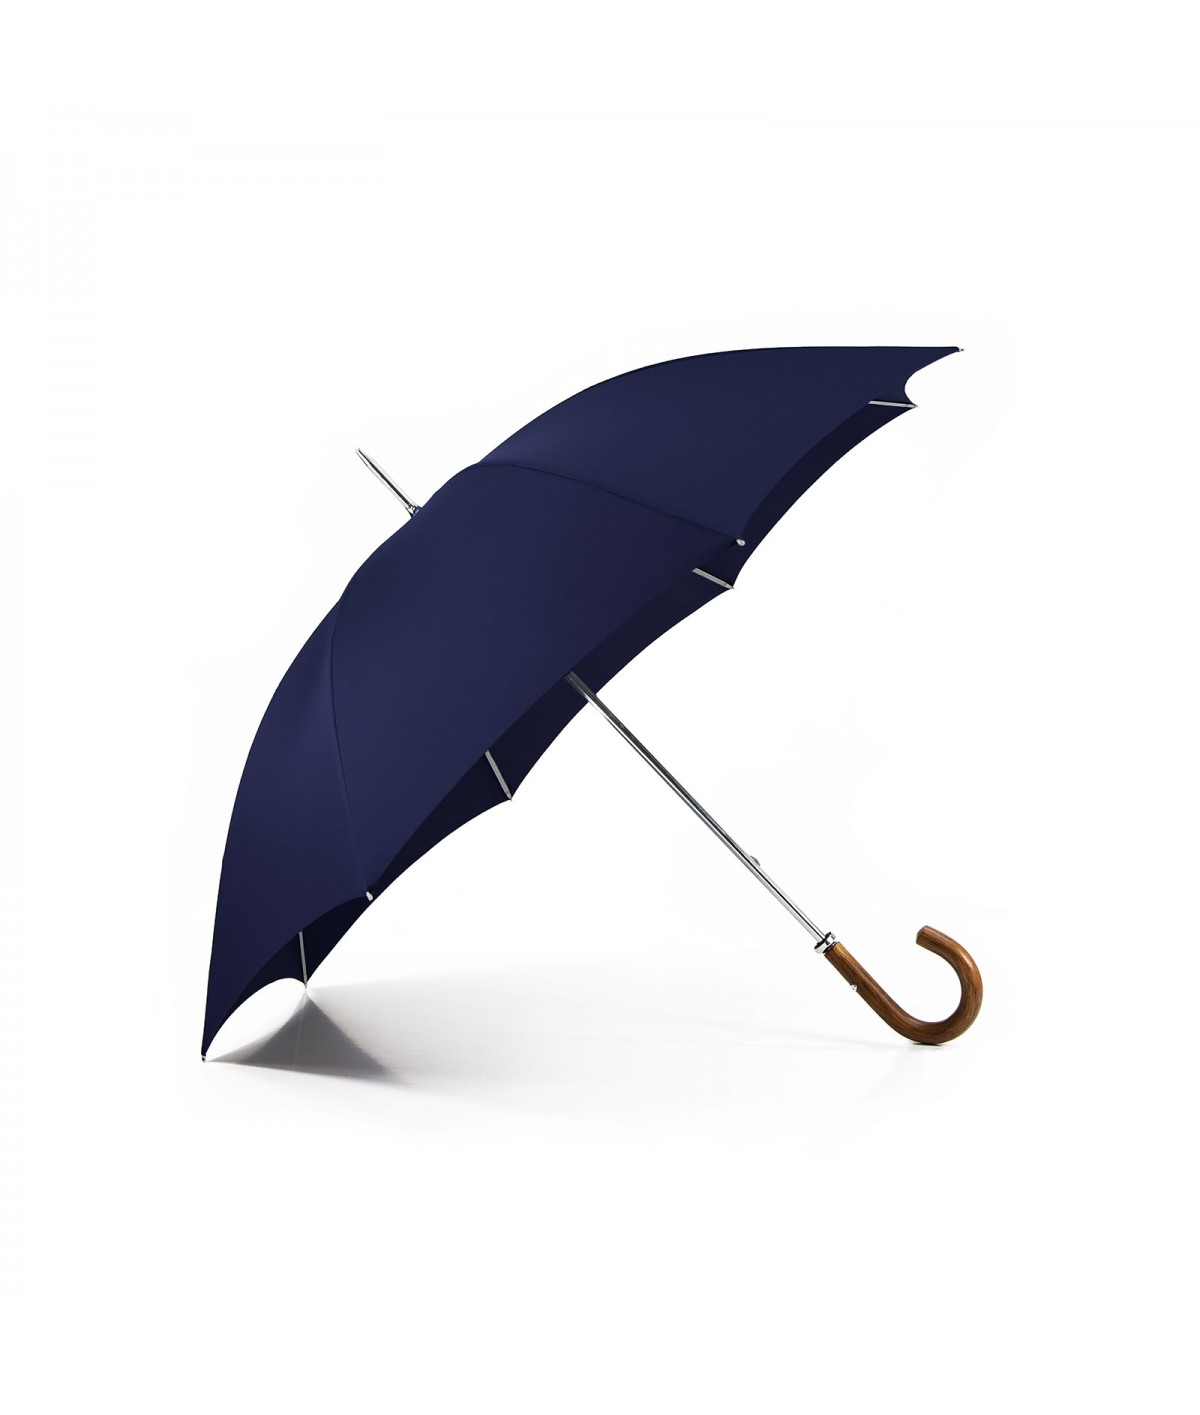 "→ ""The Golf"" Umbrella - Manual - Navy - Curved wooden handle - Handcrafted in France by Maison Pierre Vaux"